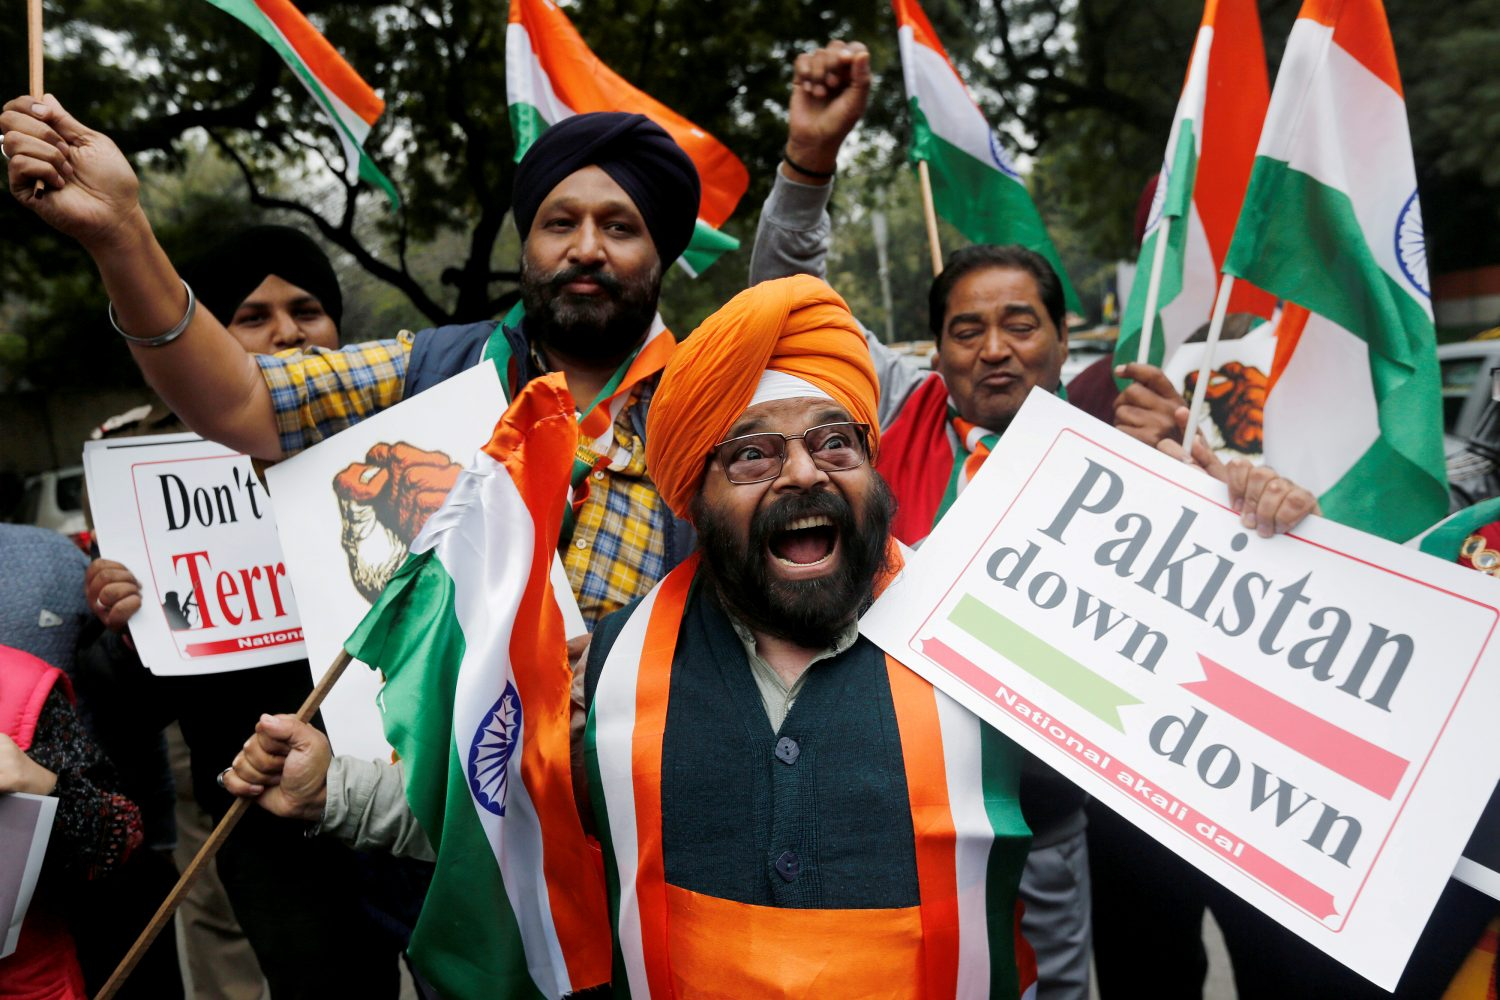 FILE PHOTO: People hold national flags and placards as they celebrate after Indian authorities said their jets conducted airstrikes on militant camps in Pakistani territory, in New Delhi, India, February 26, 2019. REUTERS/Adnan Abidi/File Photo